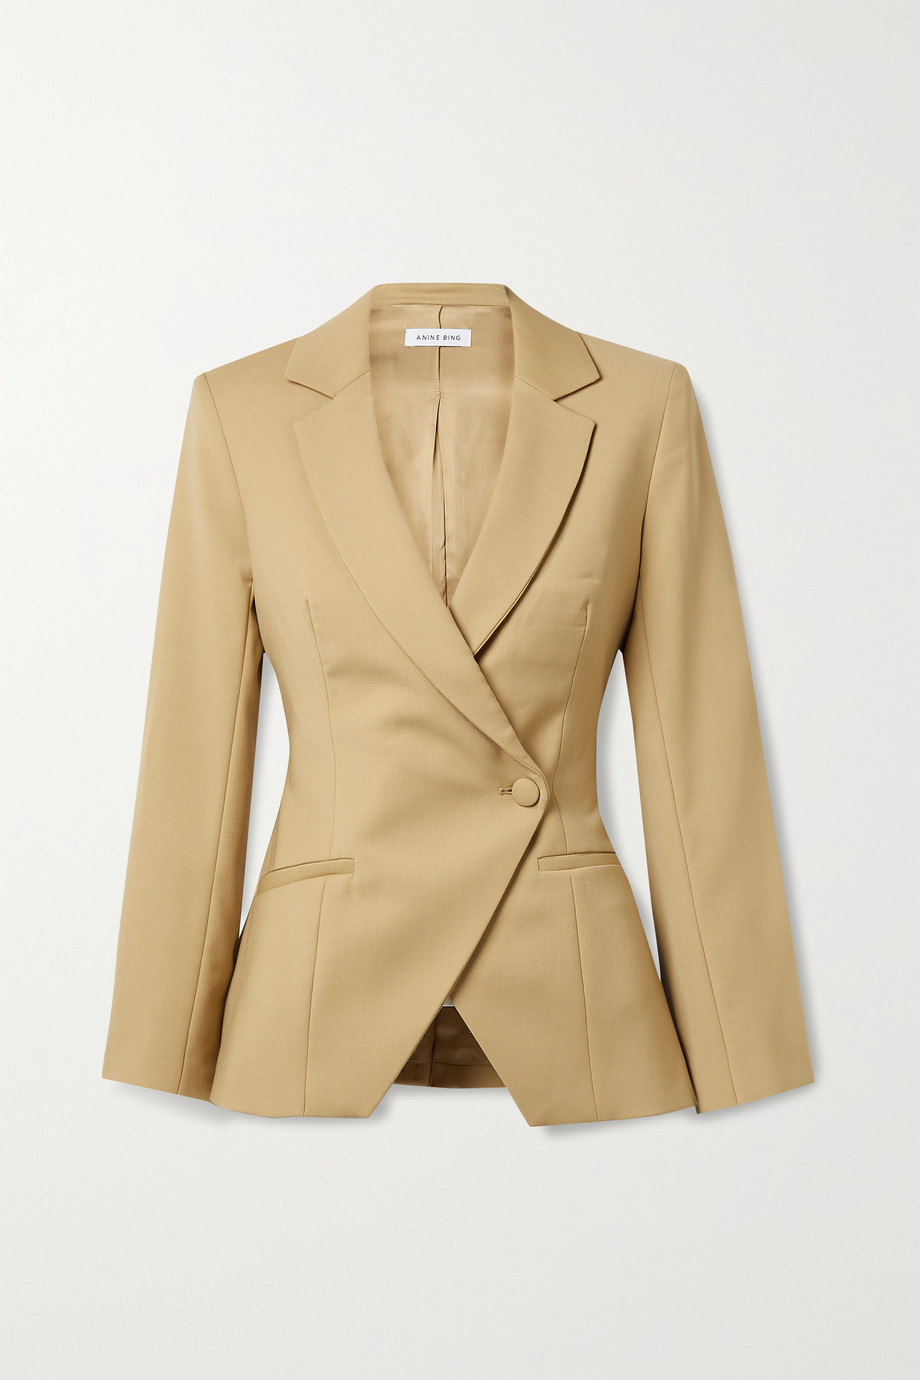 ANINE BING Ade asymmetric double-breasted wool-blend blazer